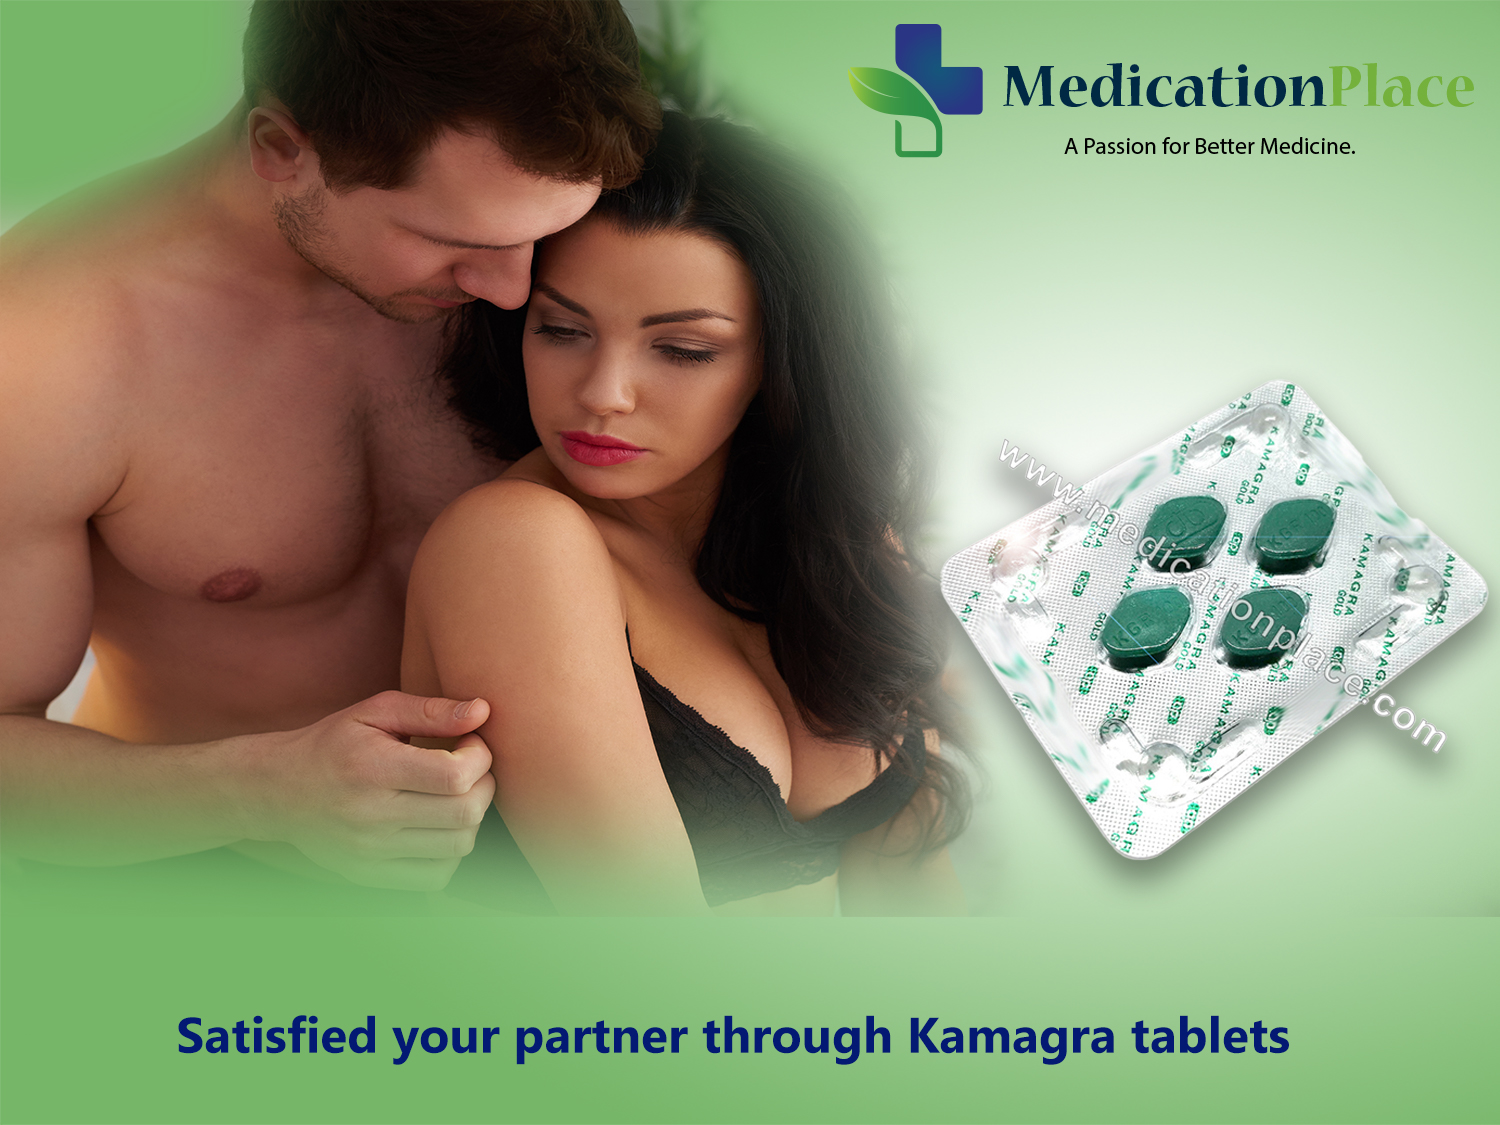 Satisfied Your Partner through Kamagra Tablets - Medicationplace